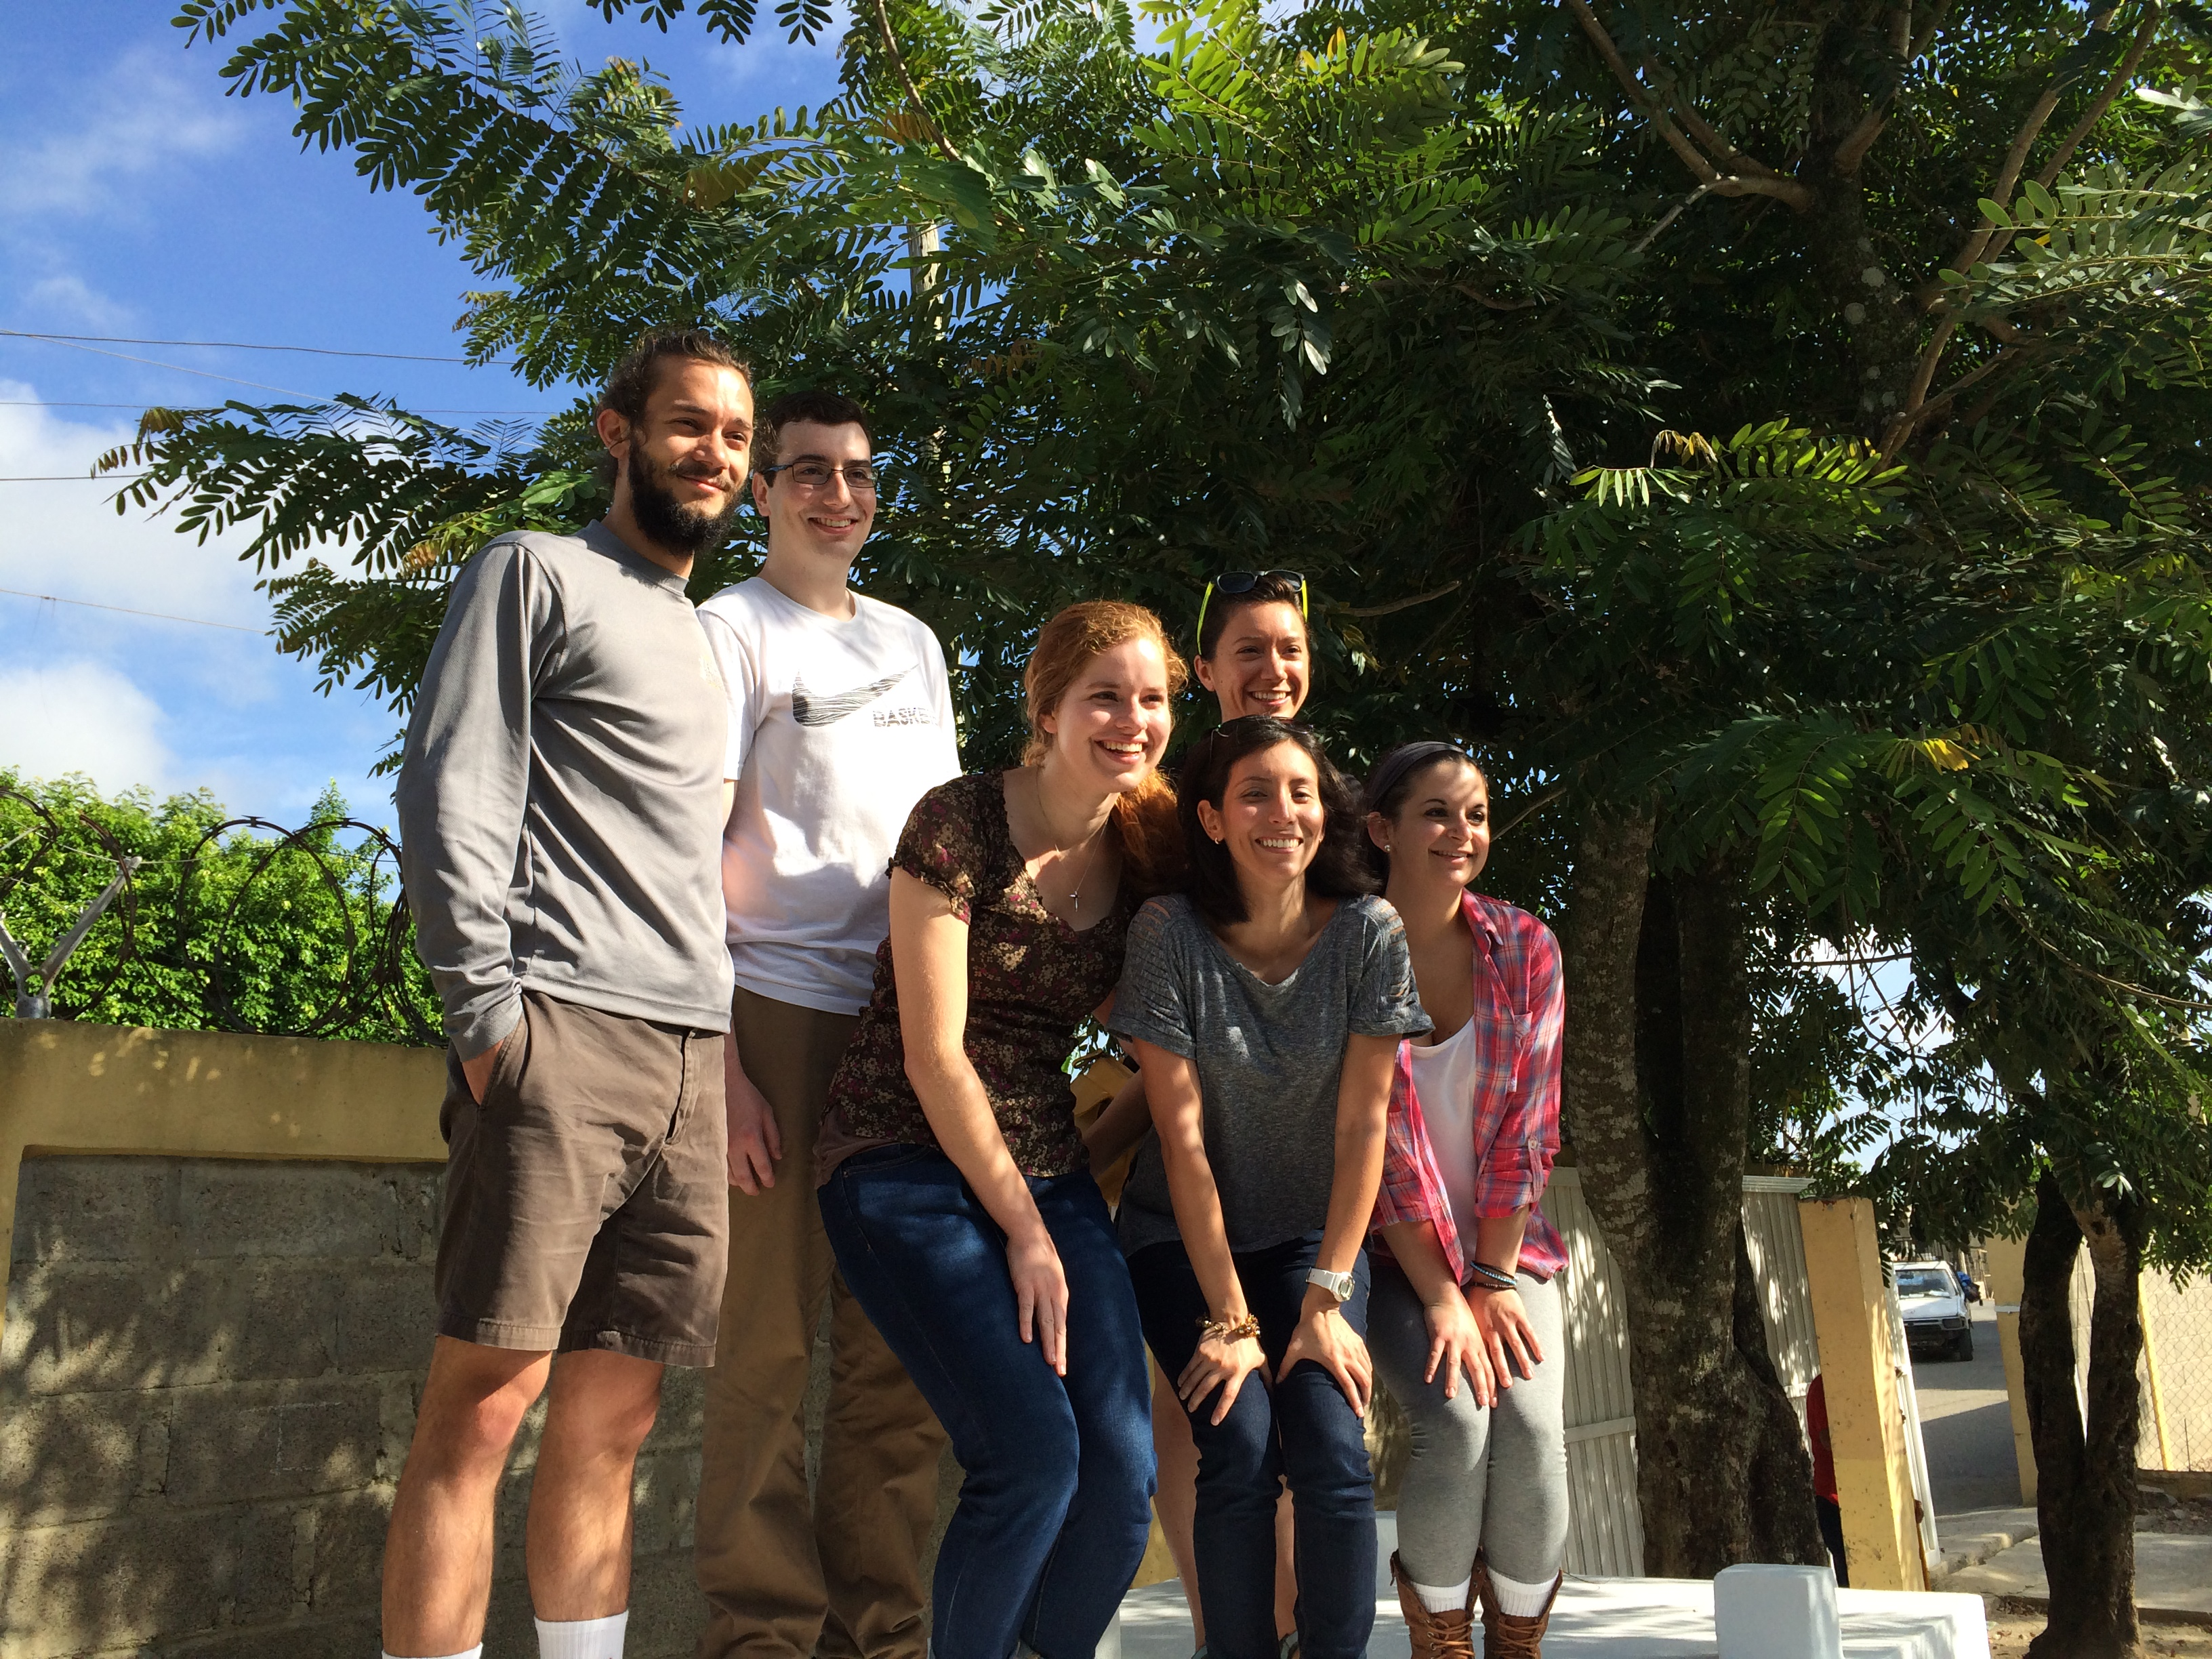 Students pose in the Dominican Republic